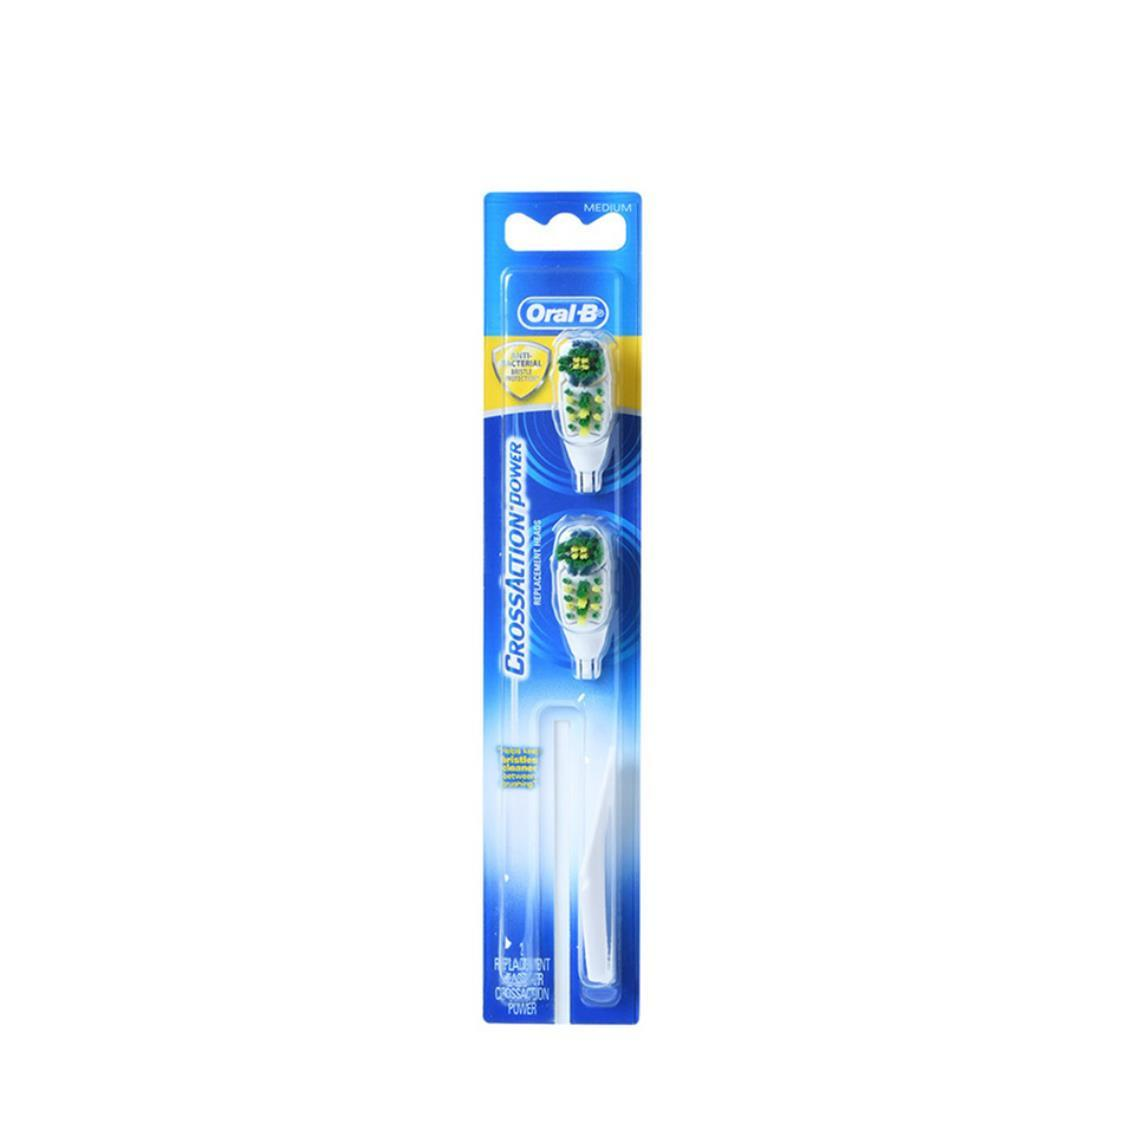 Oral B Crossaction Power Refill 2S Soft